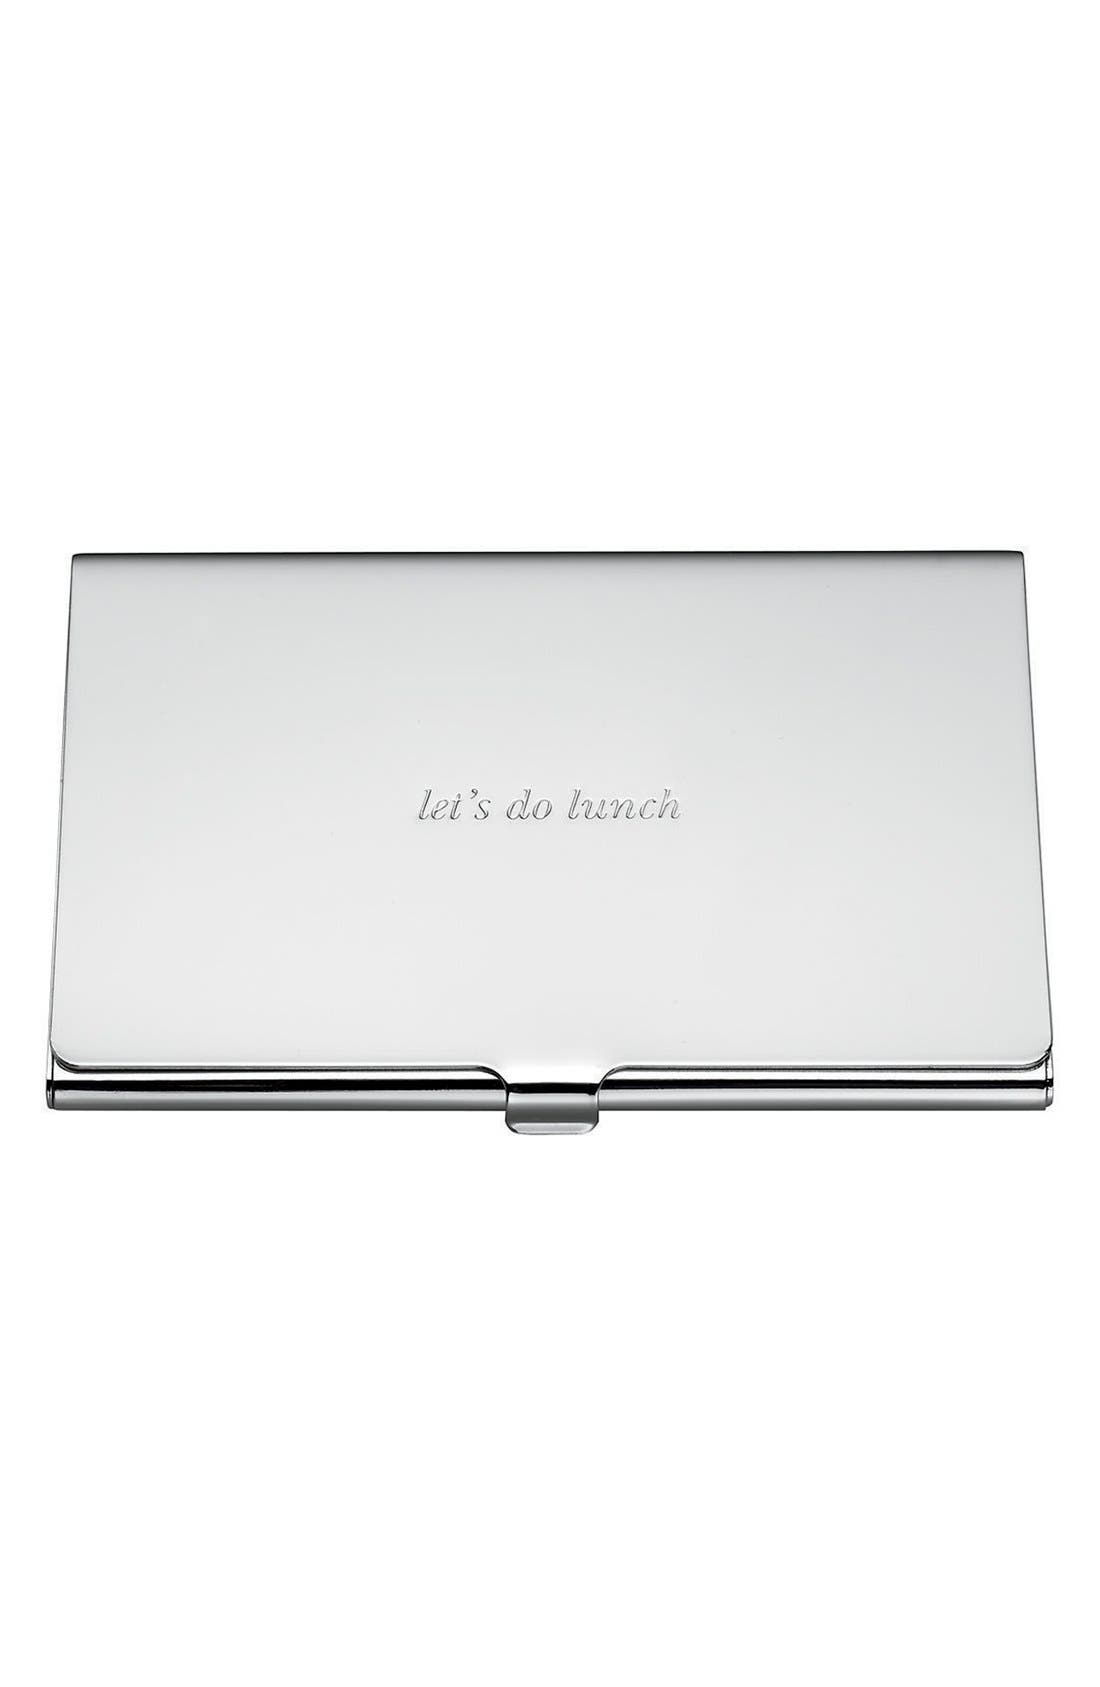 KATE SPADE NEW YORK lets do lunch business card holder